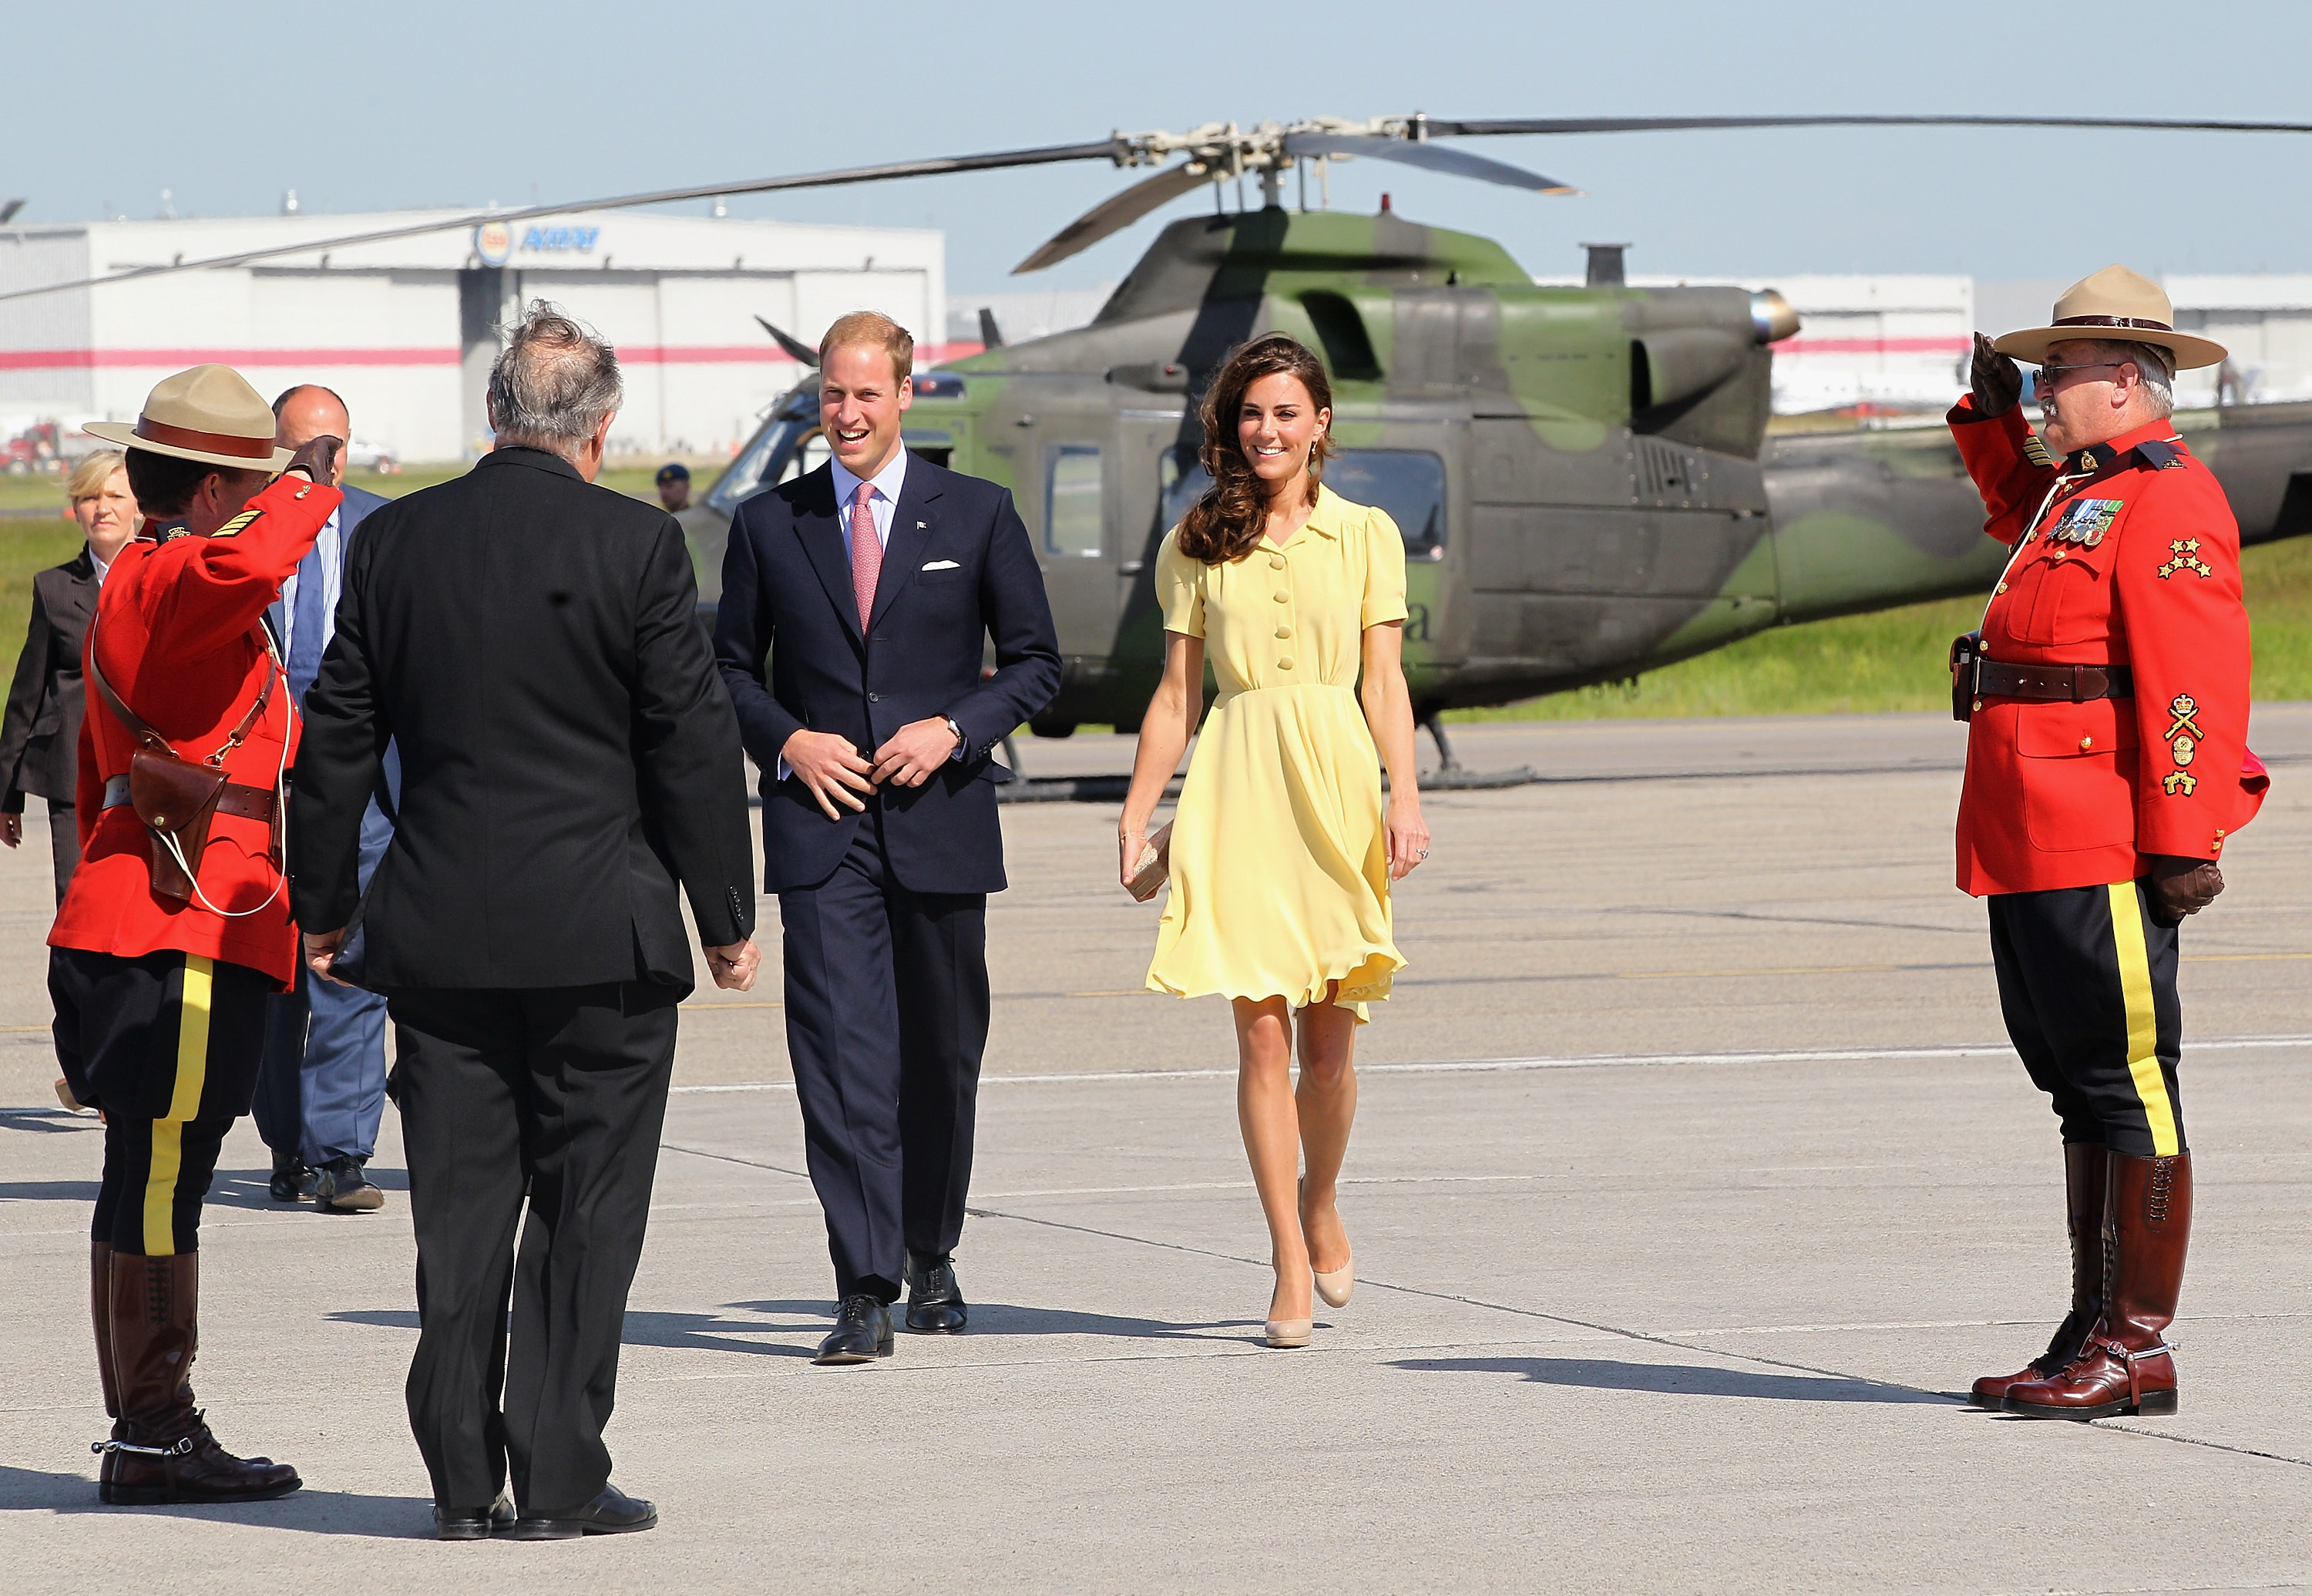 William and Kate greeted upon arriving in Calgary.